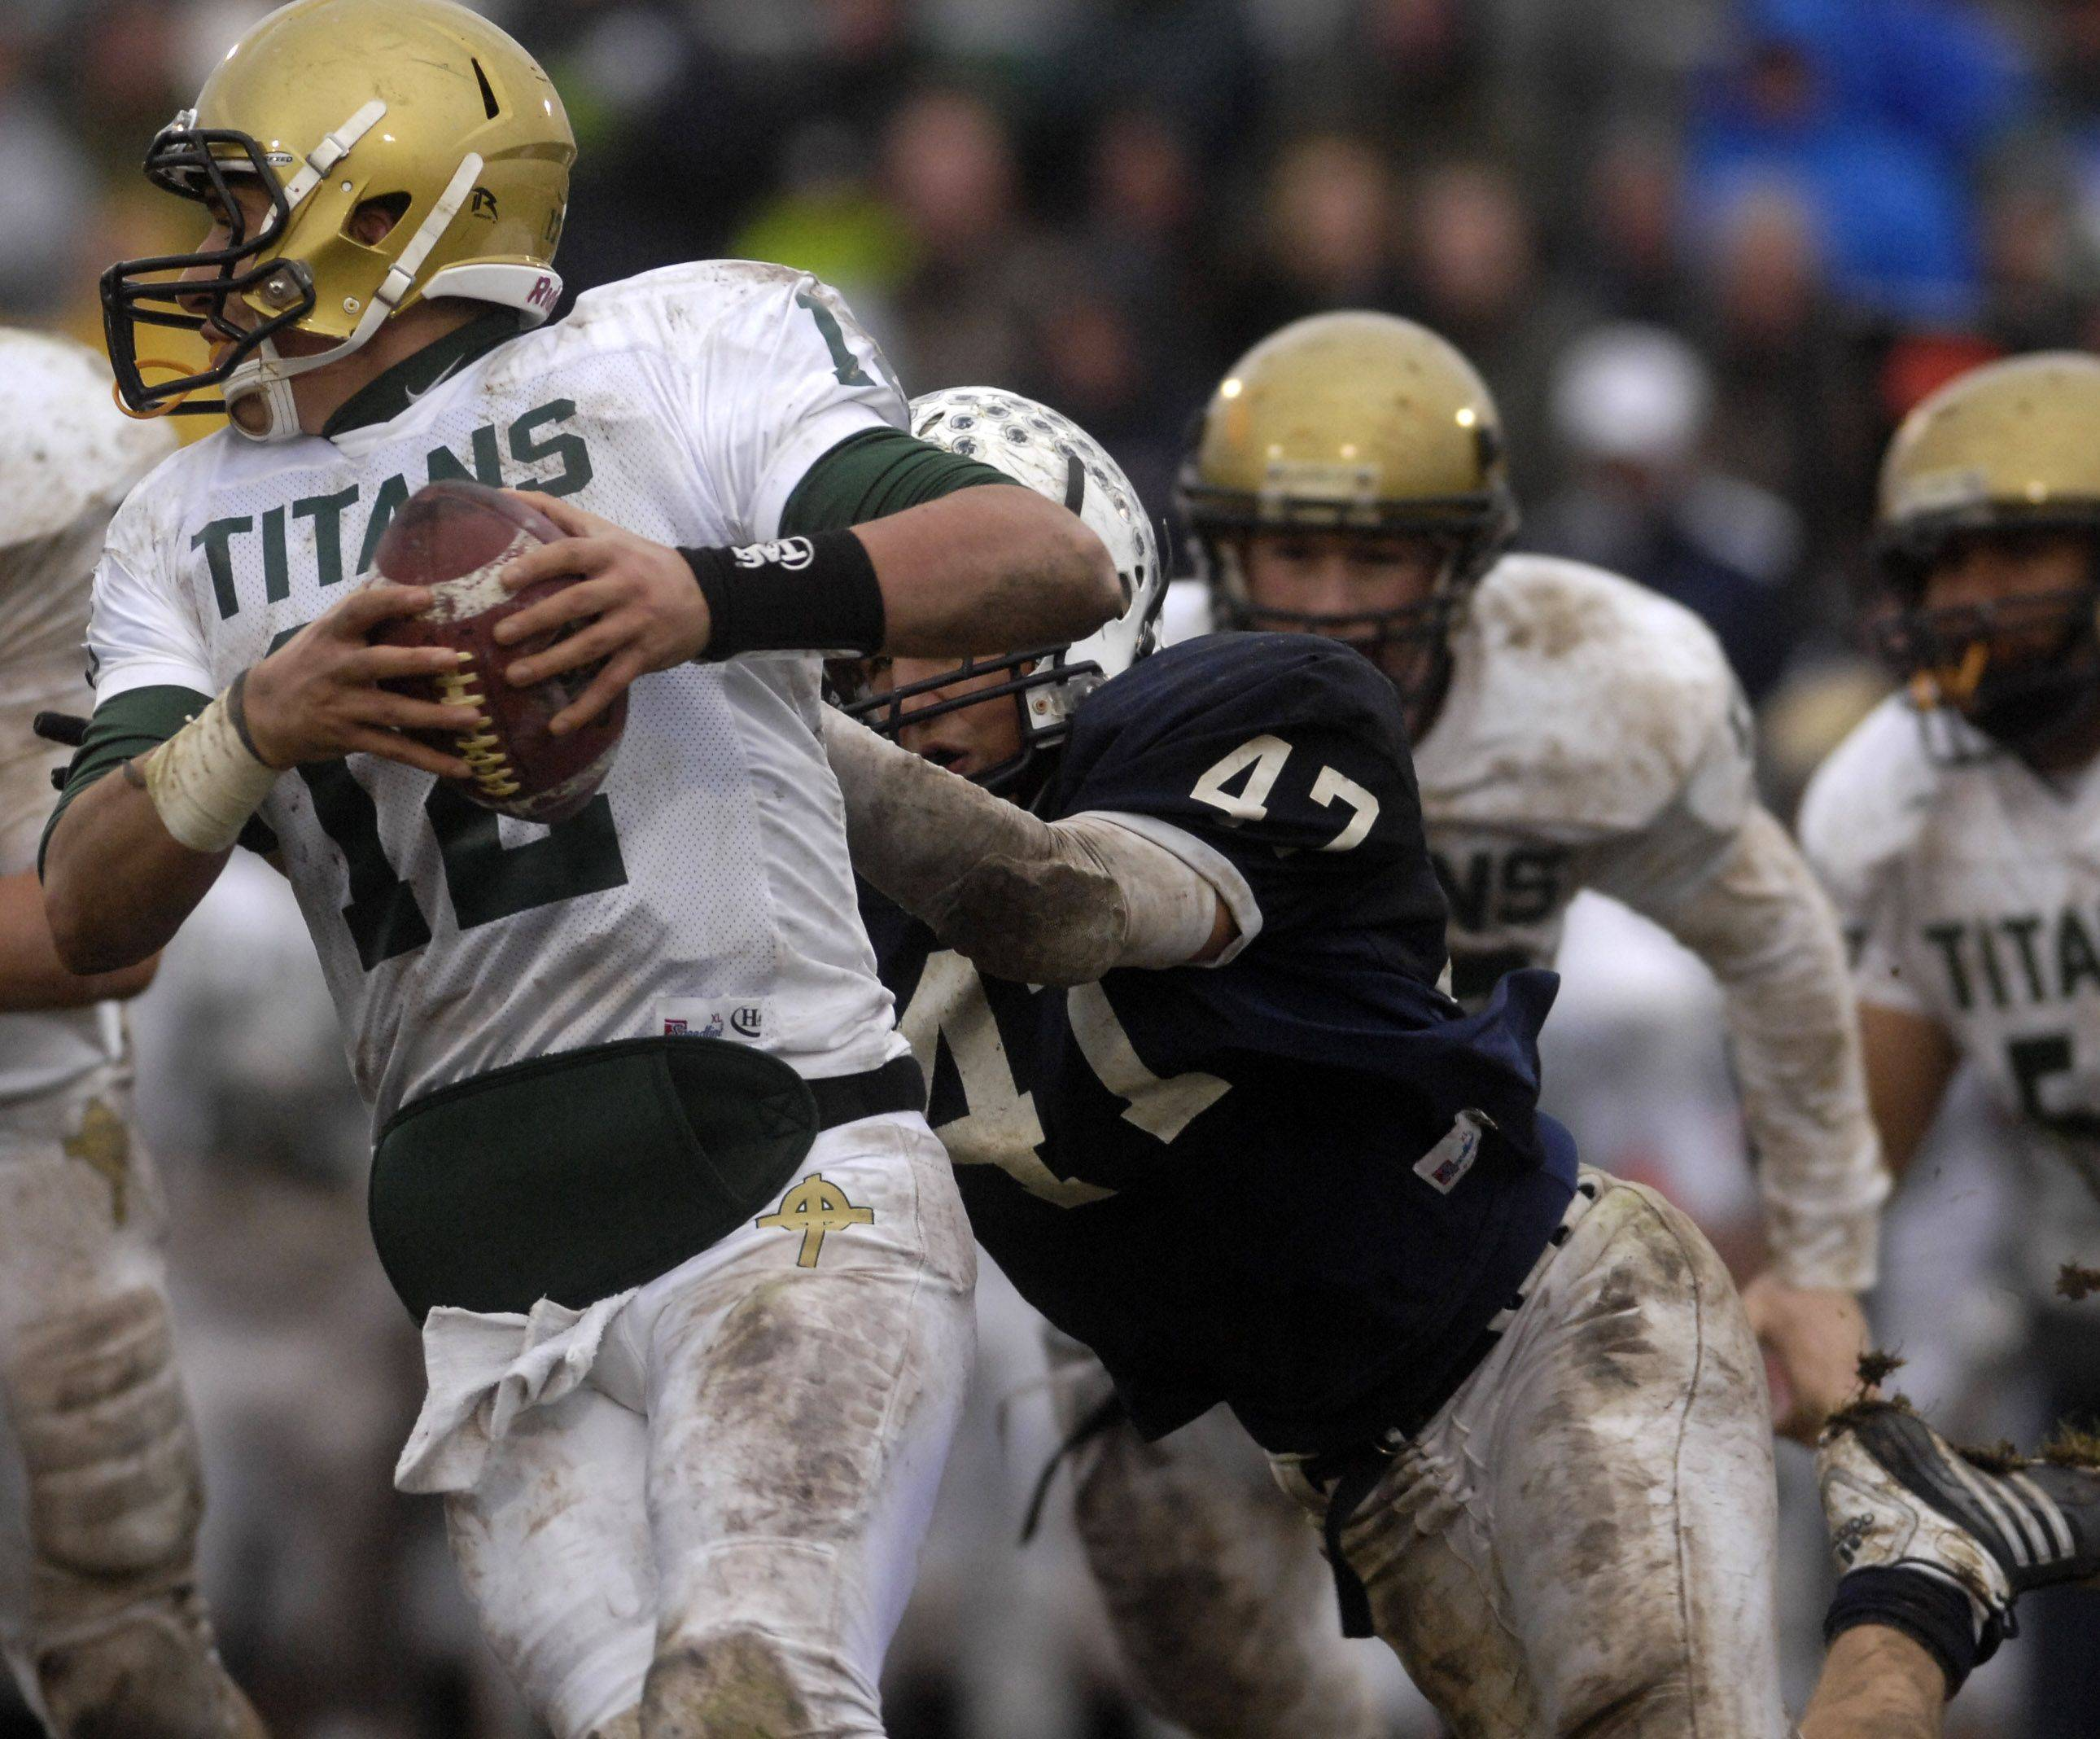 Cary-Grove's Max Kersten sacks Rockford Boylan quarterback Frank Cimino during Saturday's playoff game in Cary.